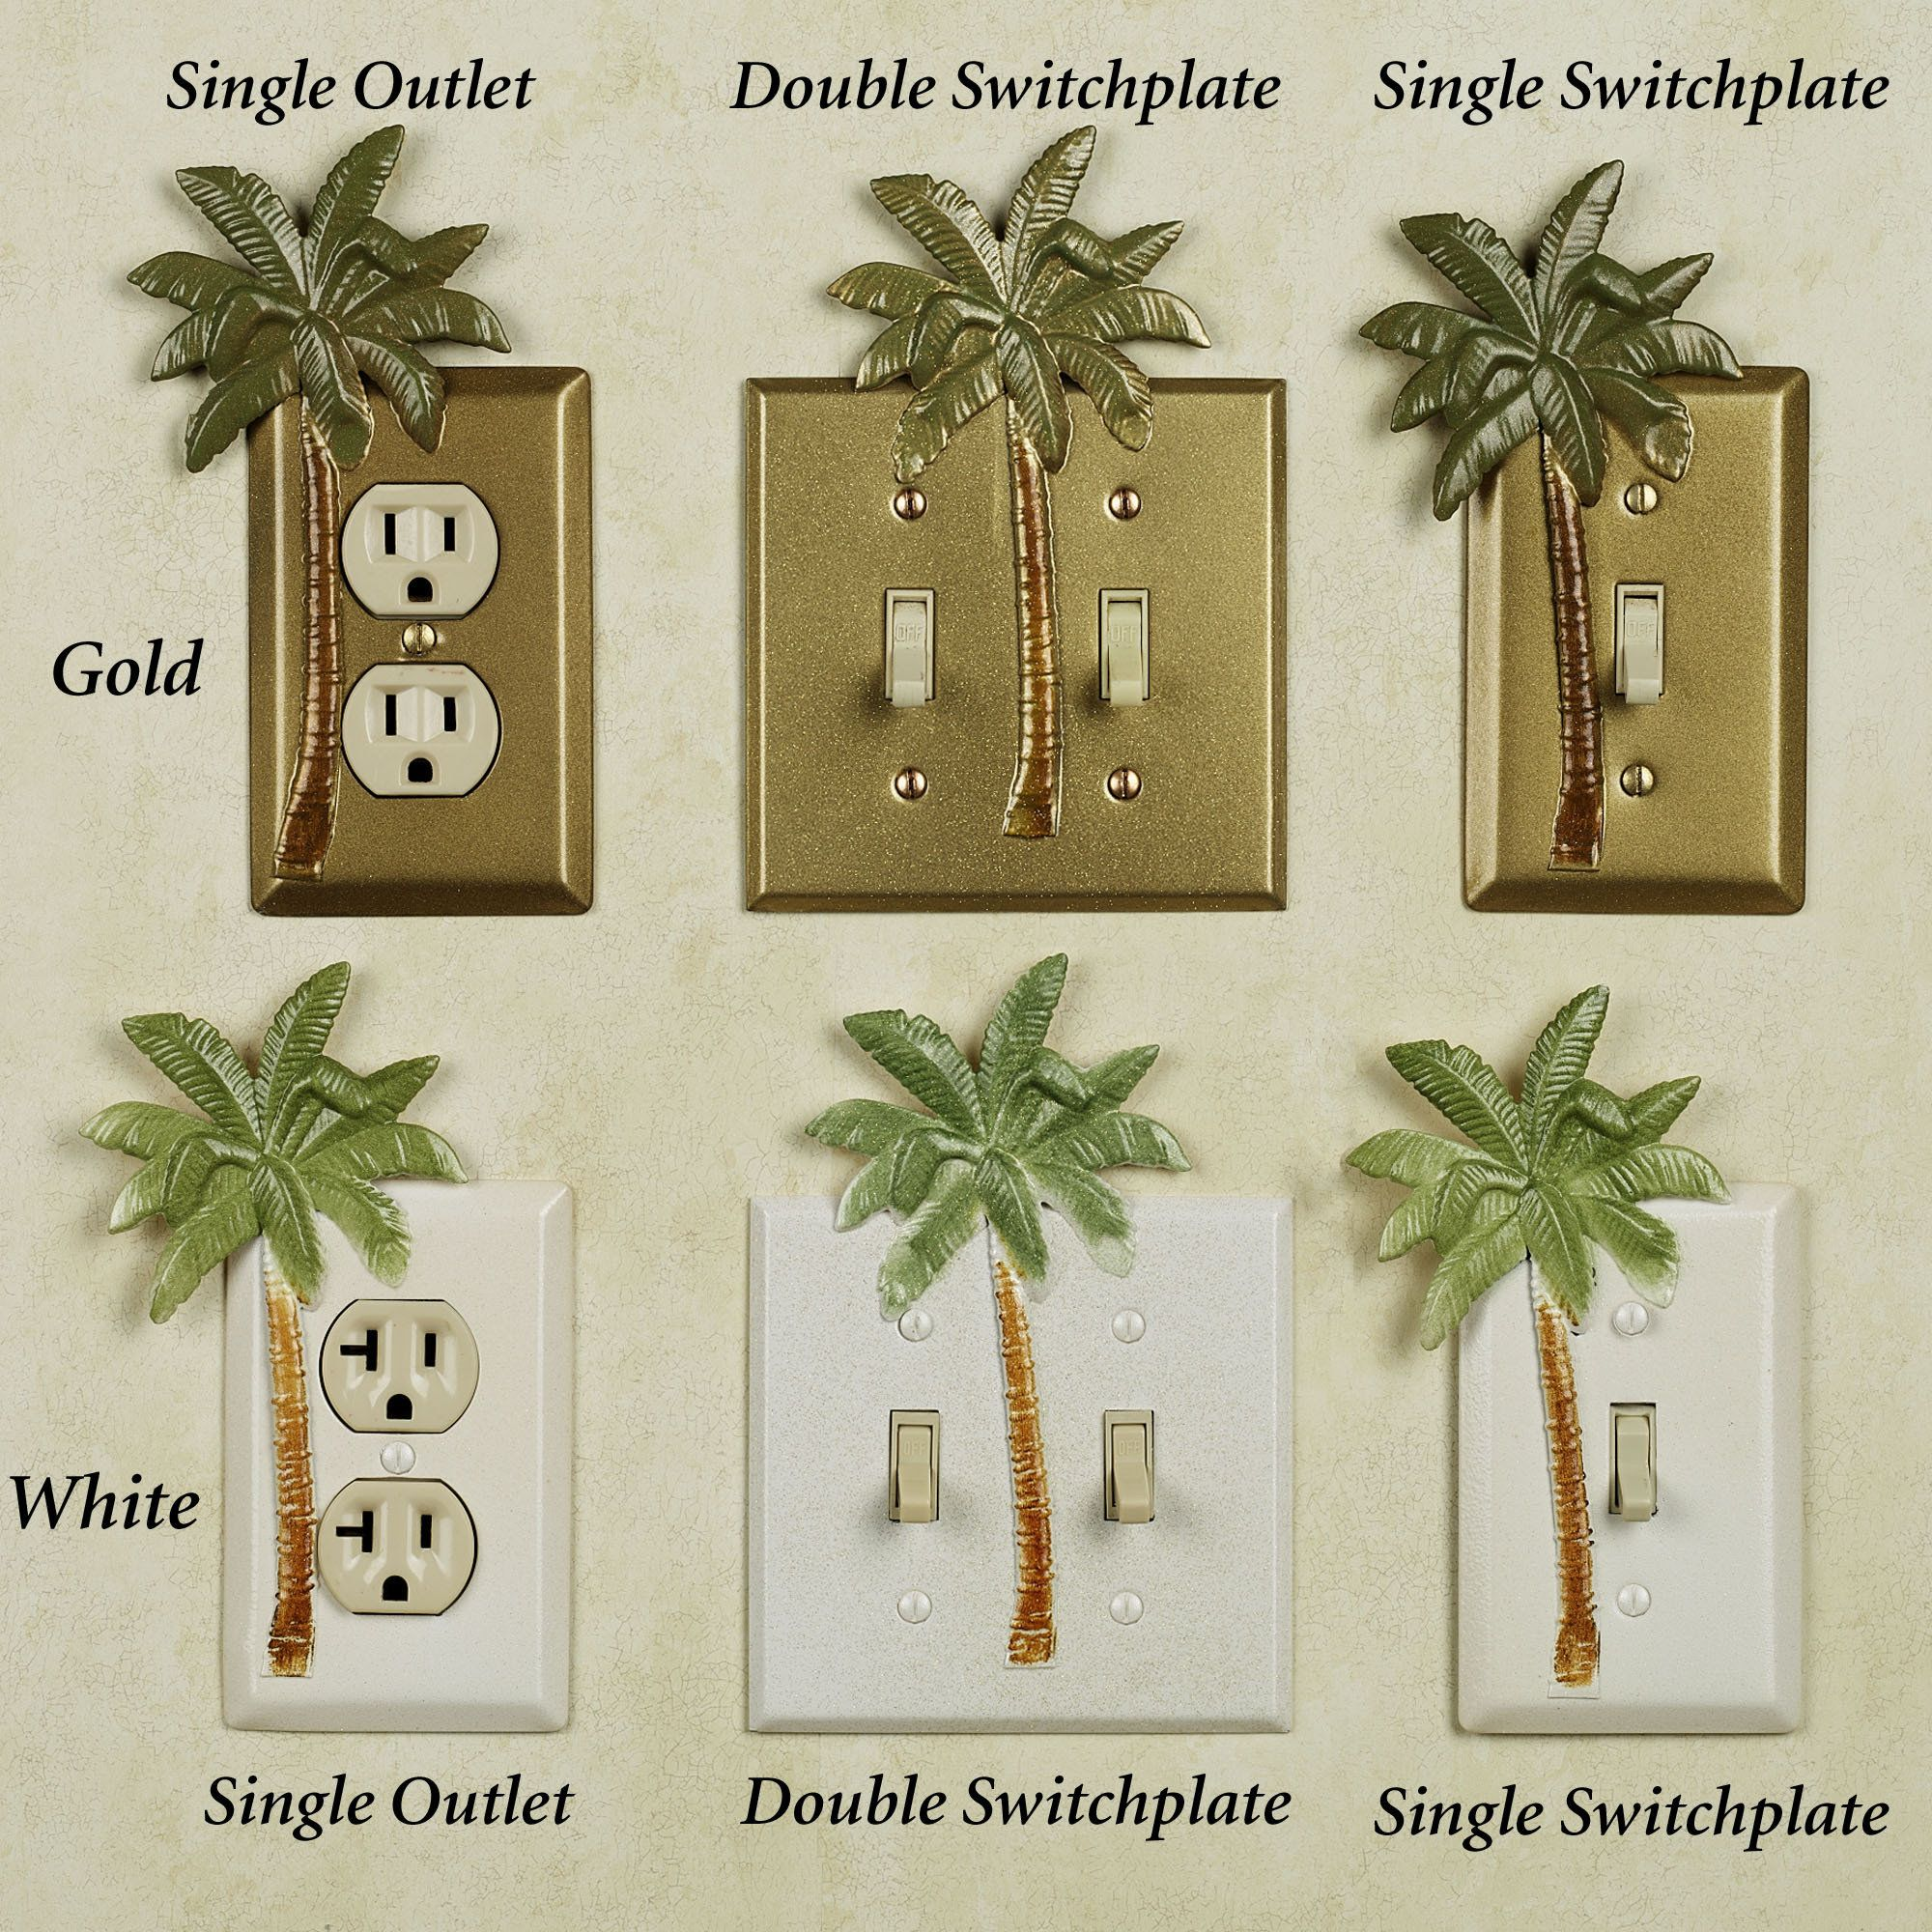 Home Decor Venice Fl Switchsecuritycompanies